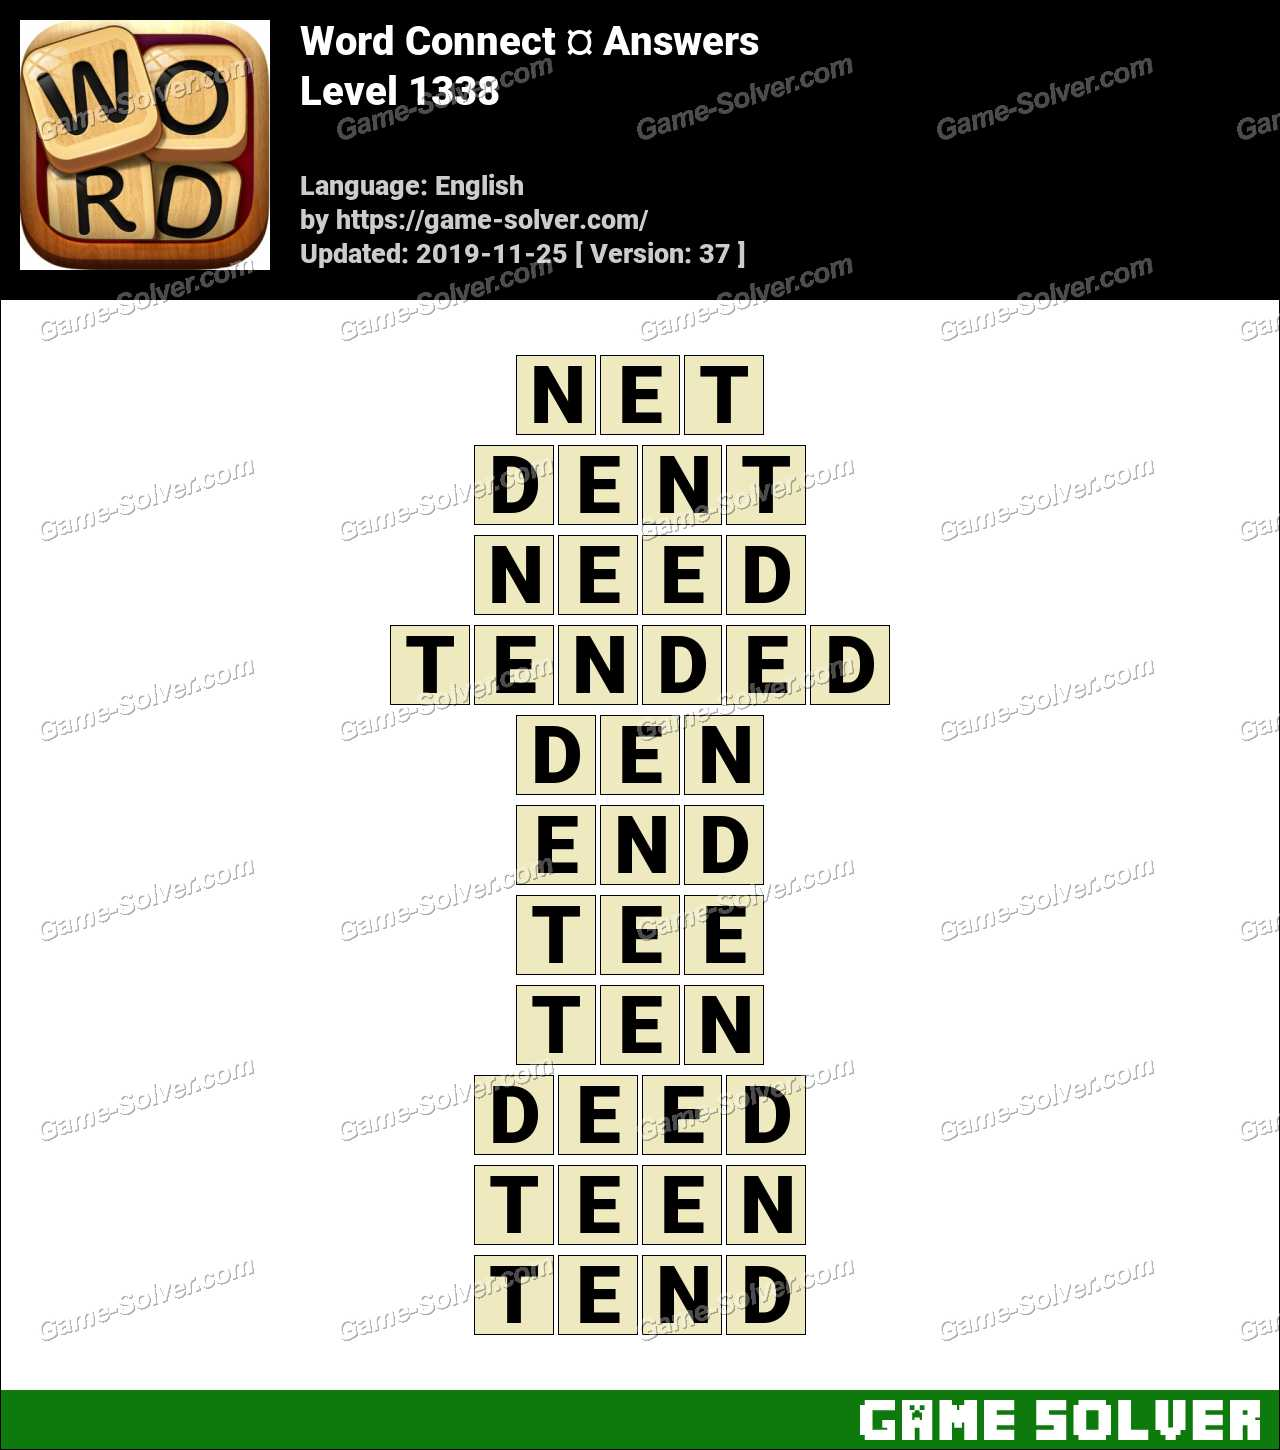 Word Connect Level 1338 Answers